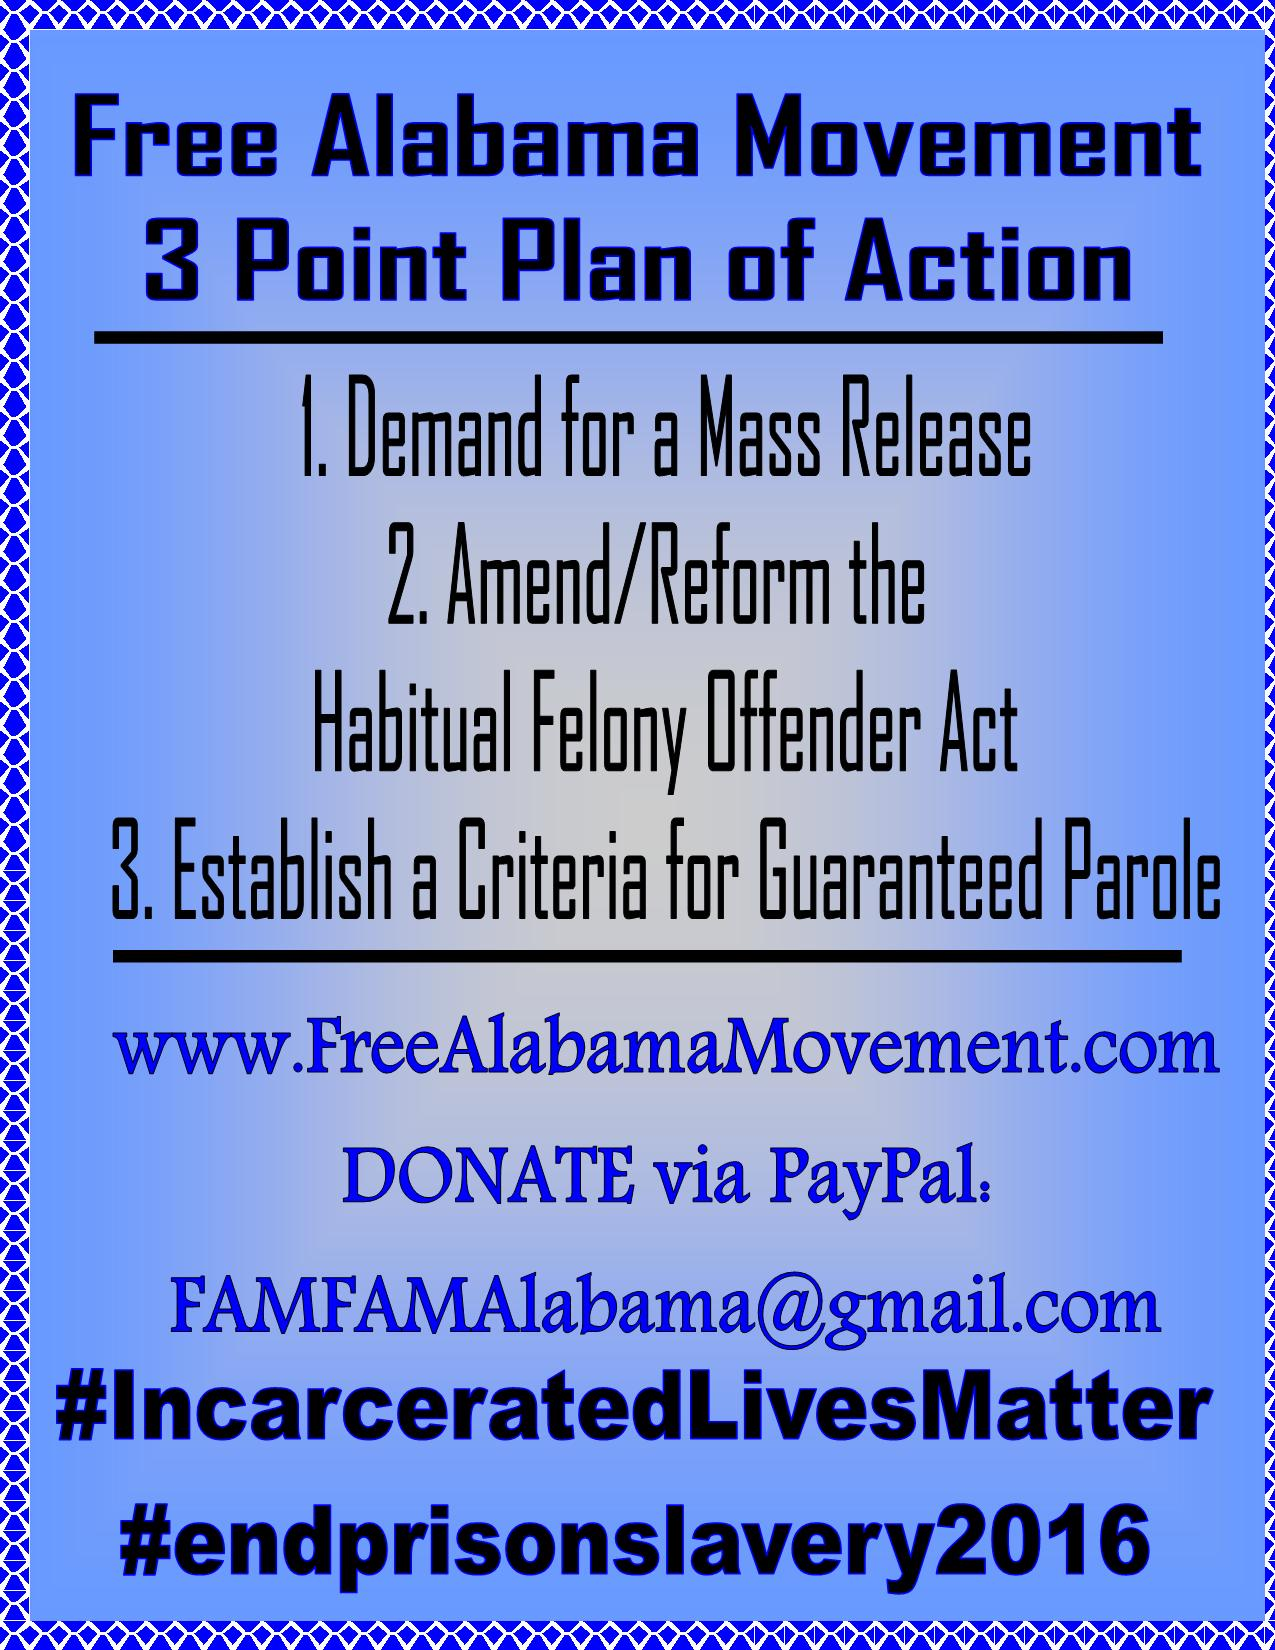 Announcement sign for Free Alabama Movement 3 point plan of action